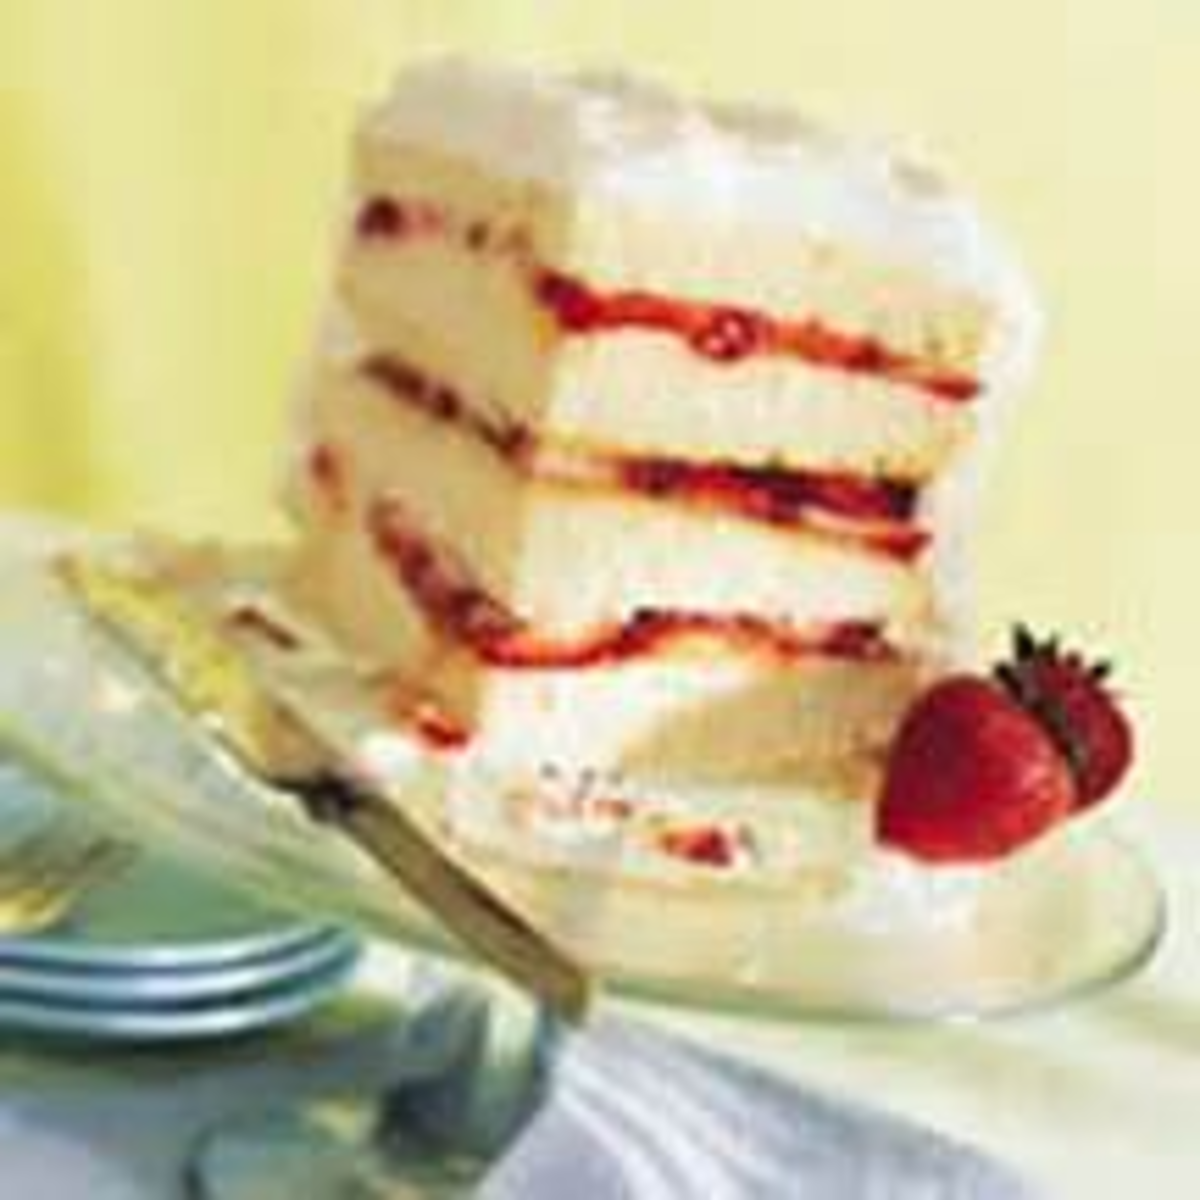 layer cake with fruit between the layers